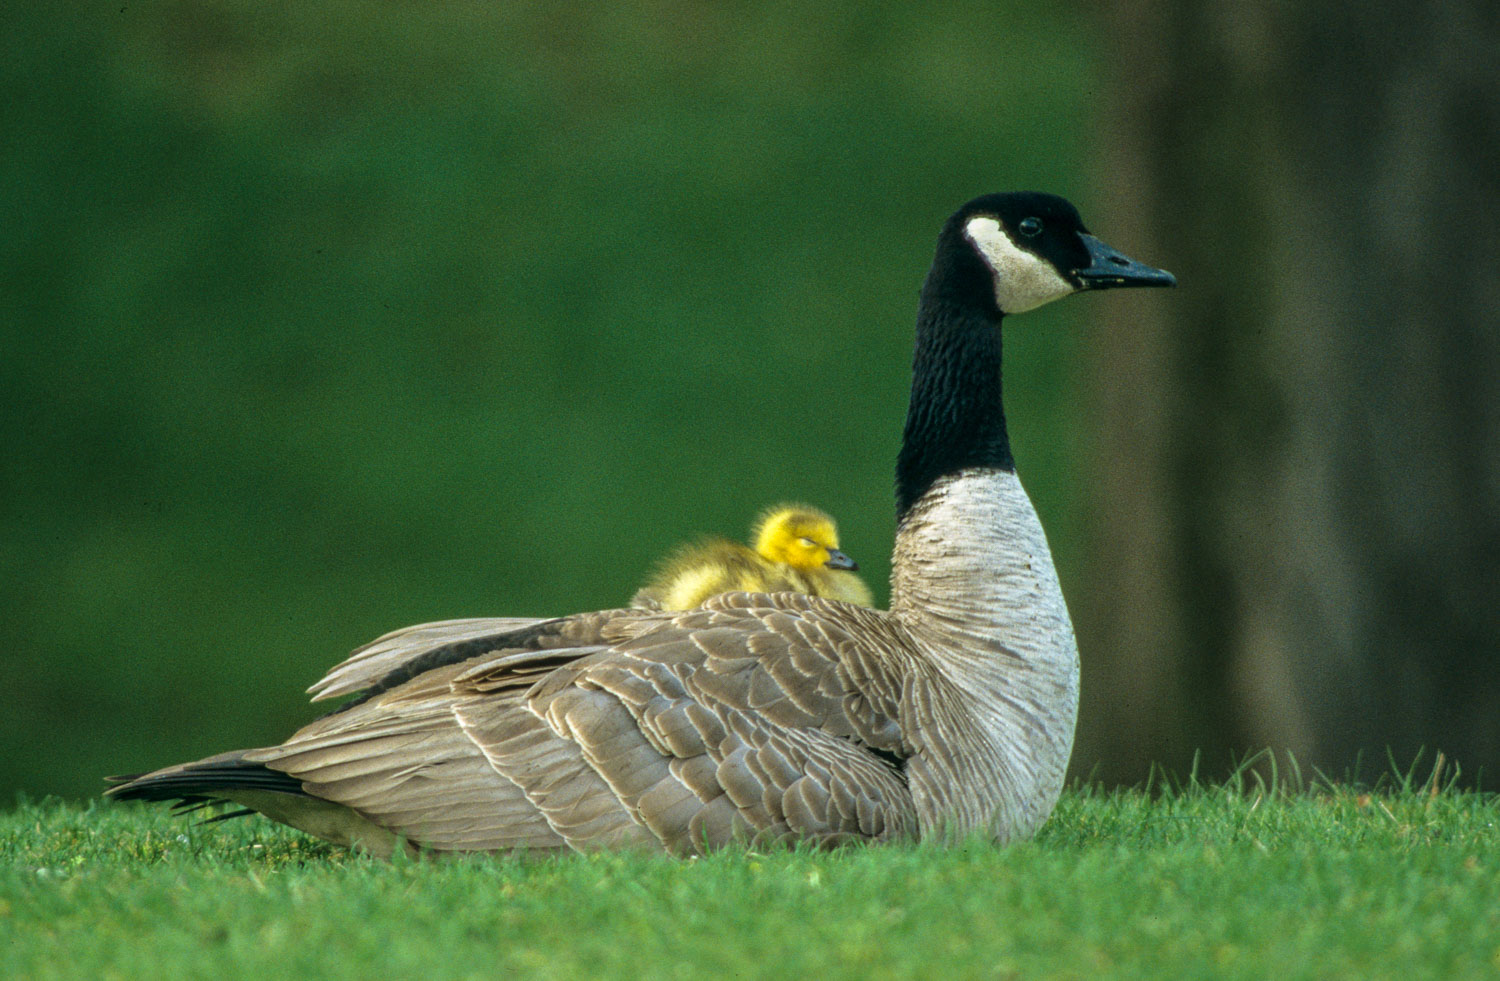 Newborn Gosling on Mother  Goose's back : Protection and Parenti